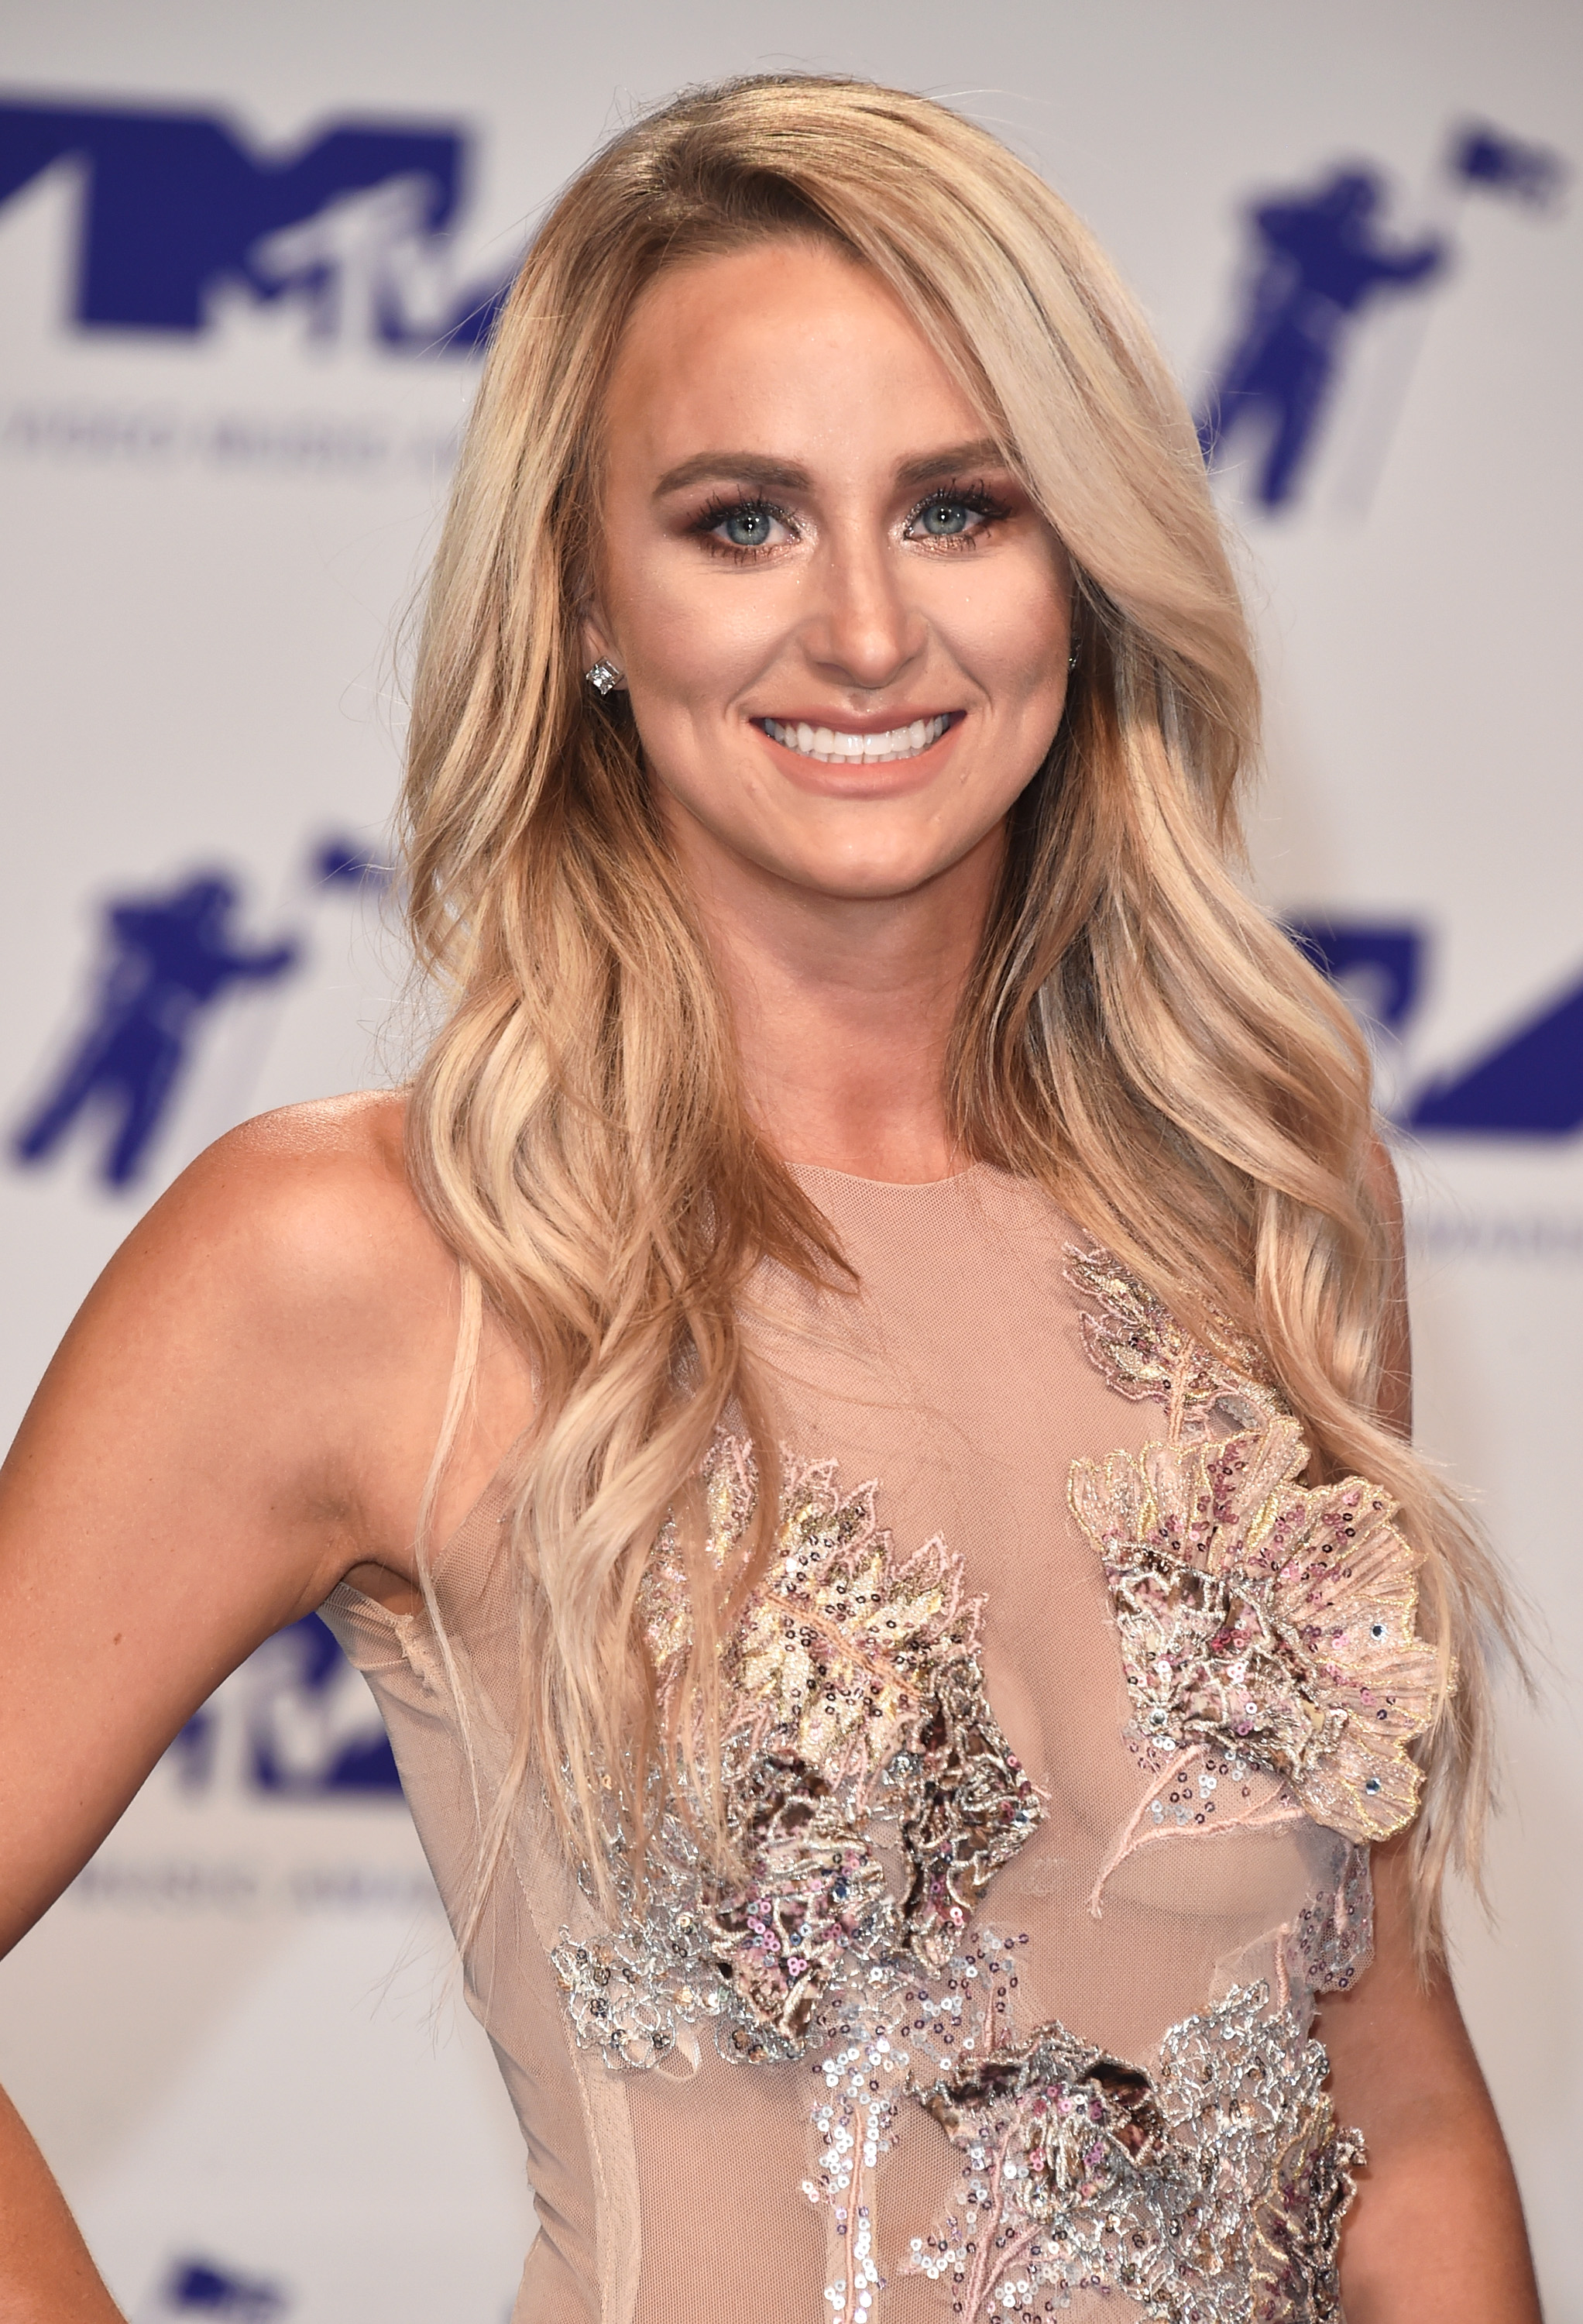 Leah messer dating personal trainer